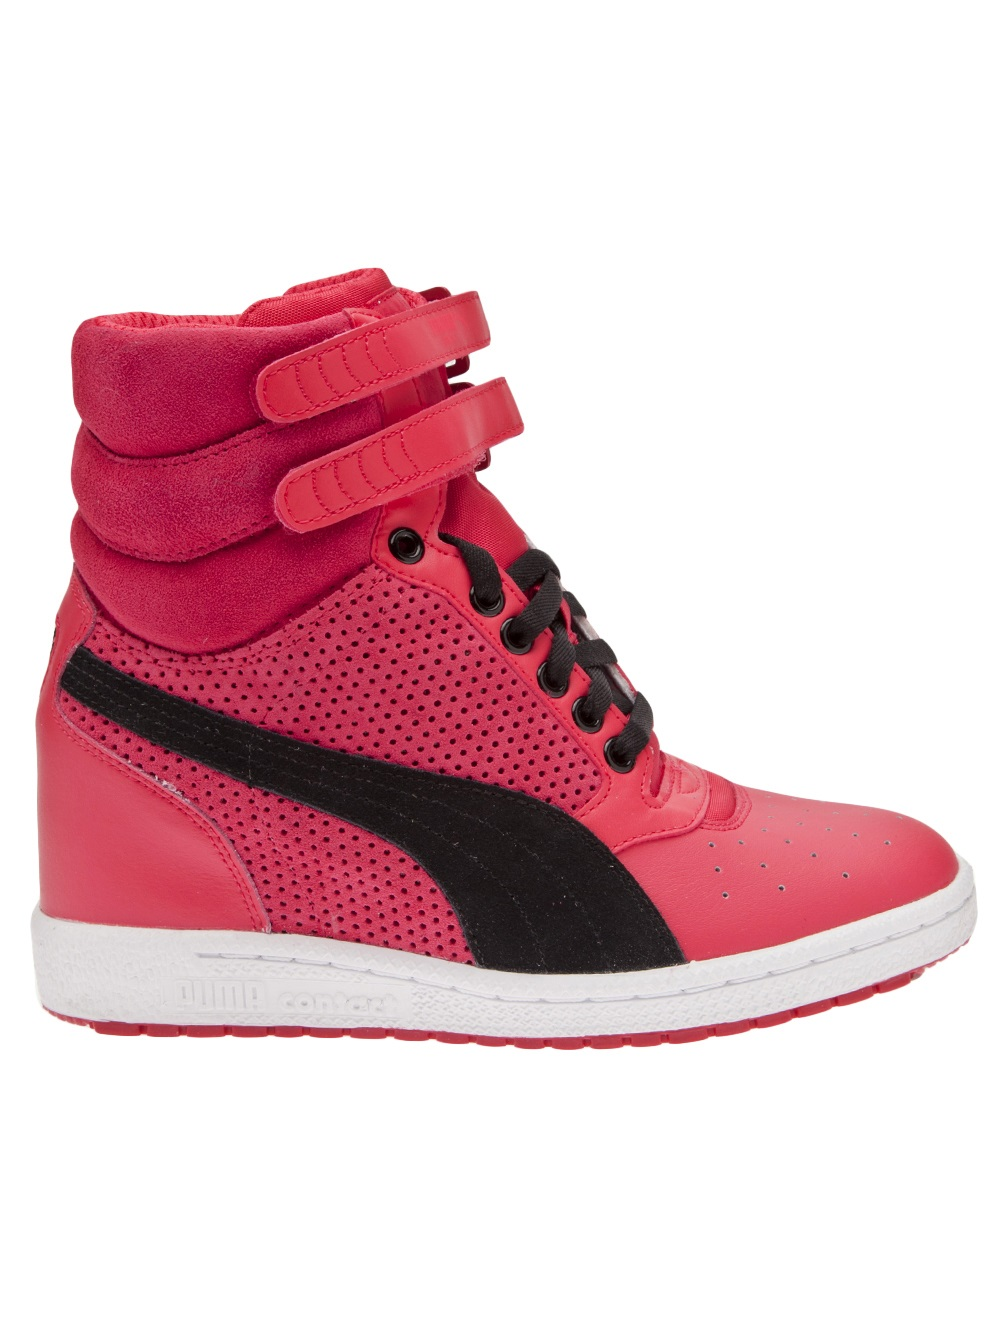 Mxqv2kjd Authentic Puma High Tops For Women